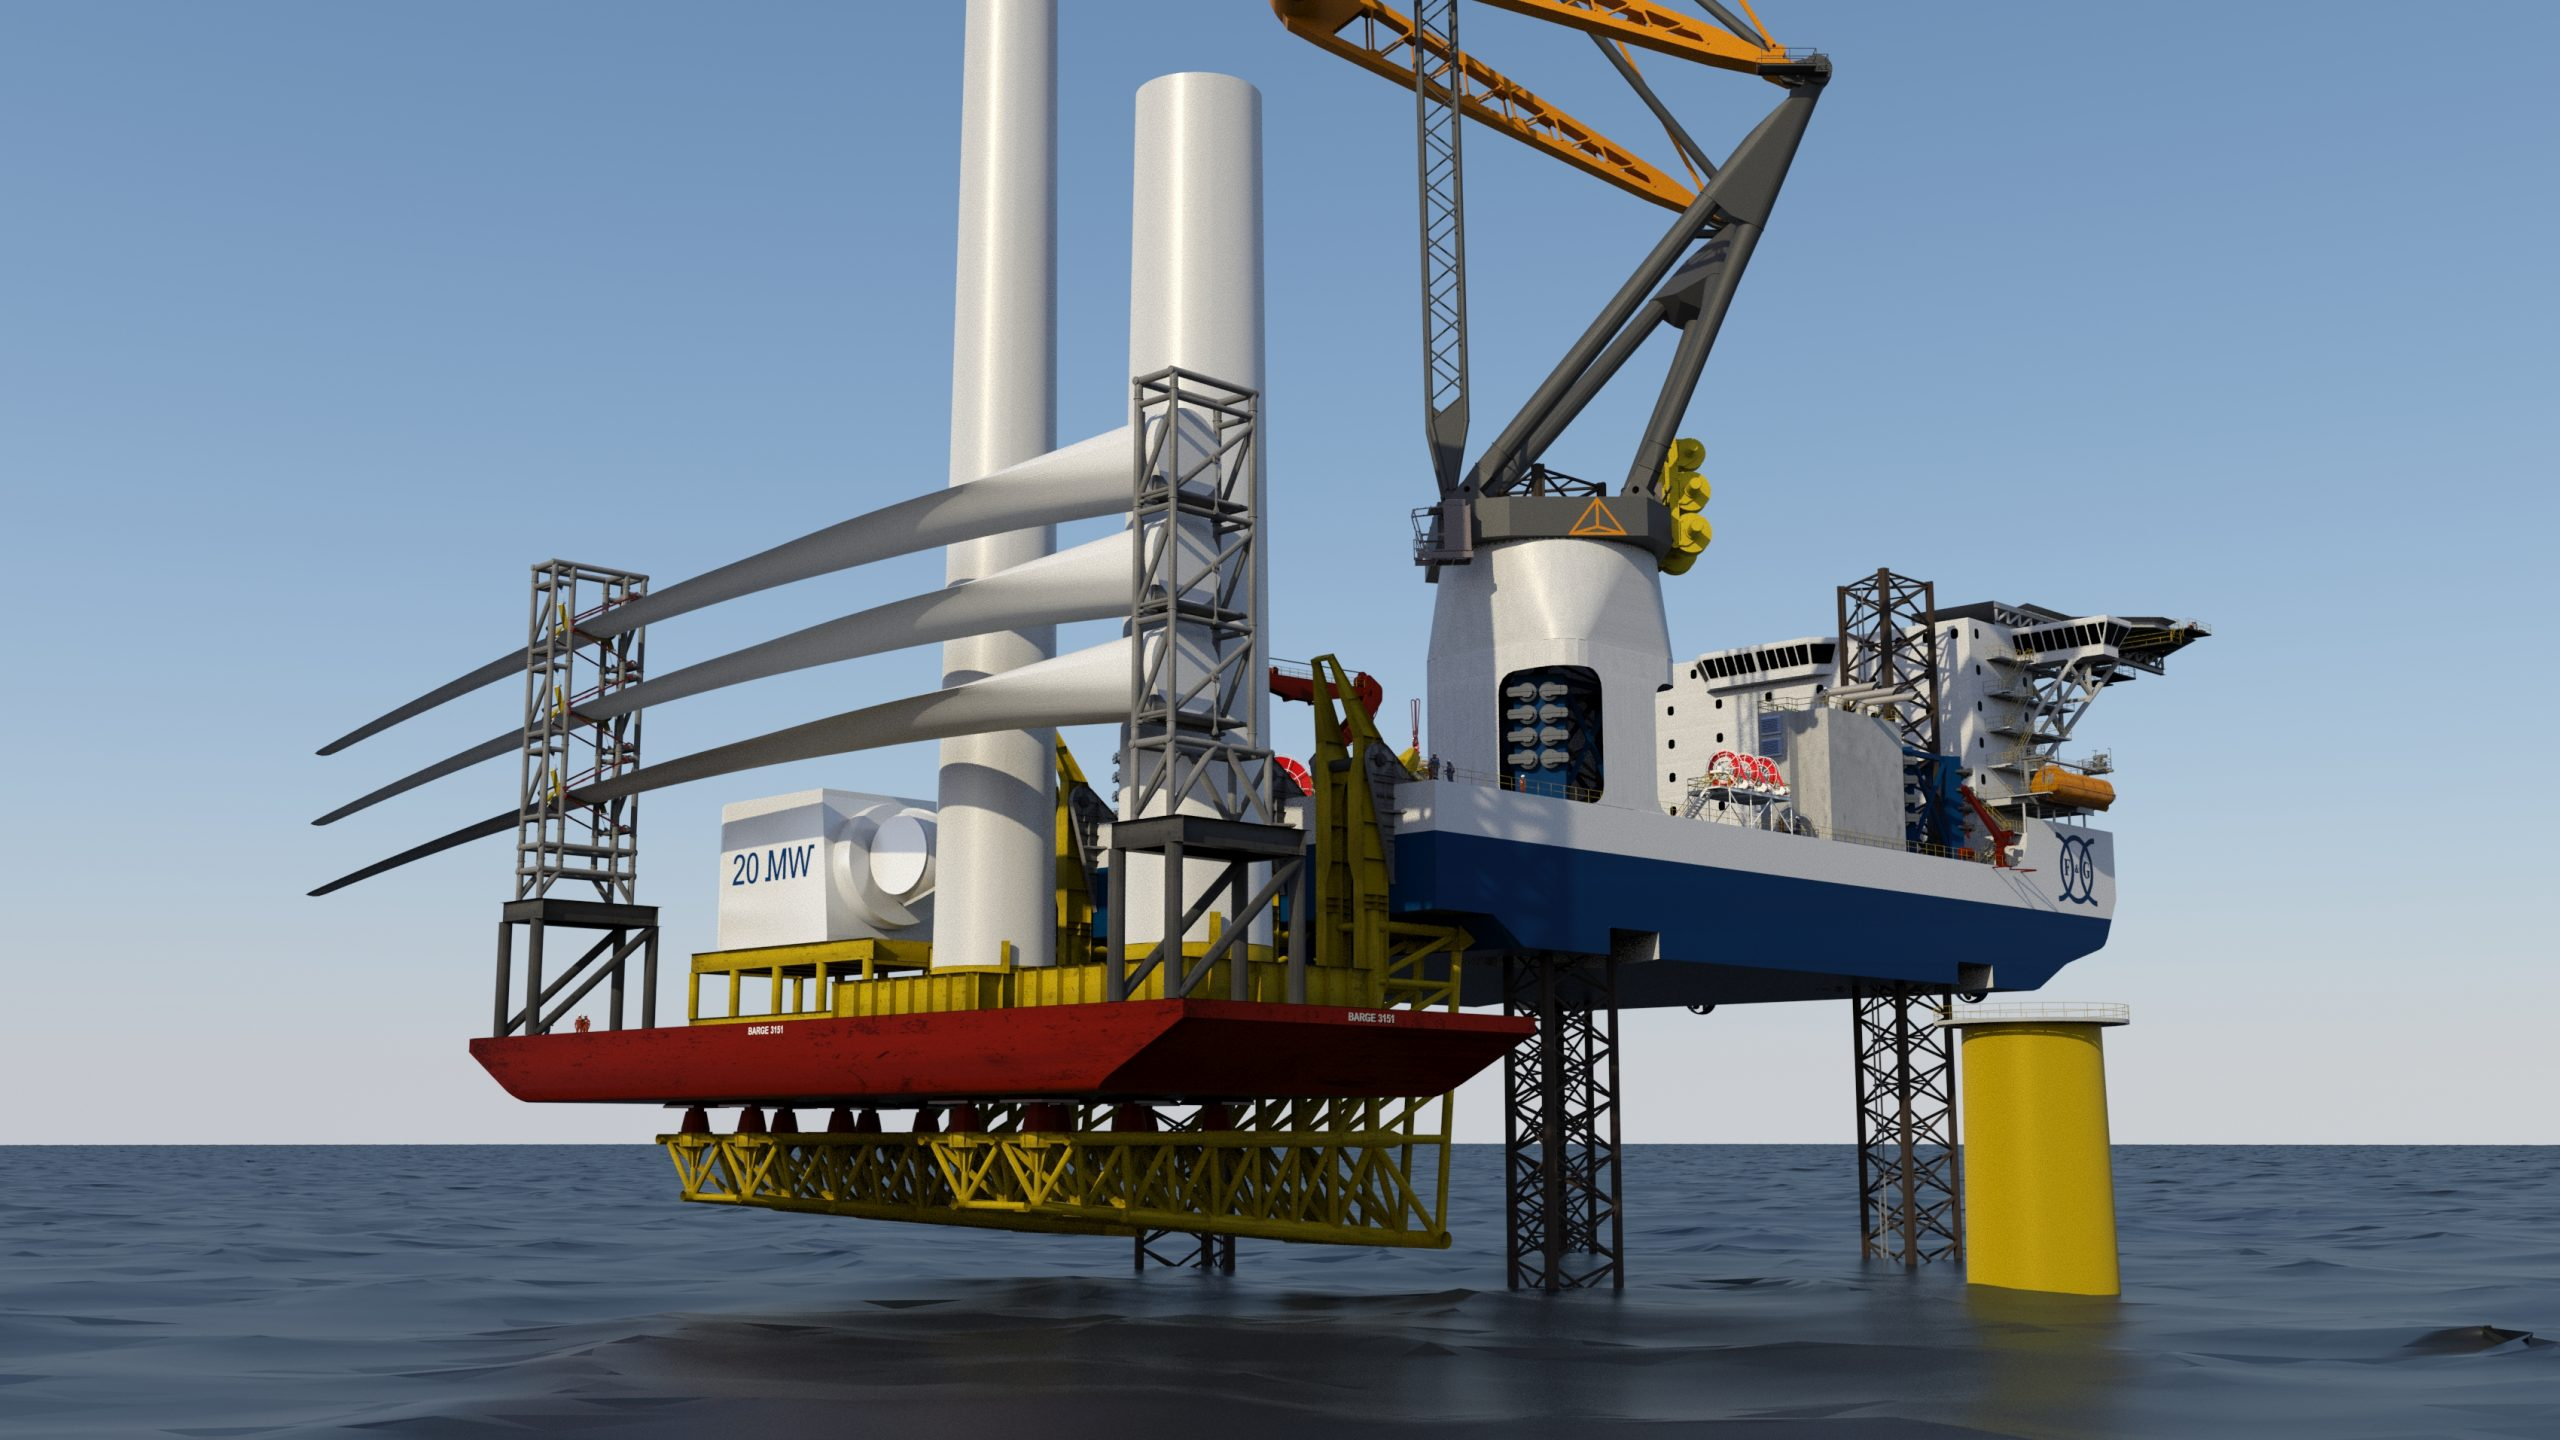 BargeRack increases uptime of offshore installation vessels